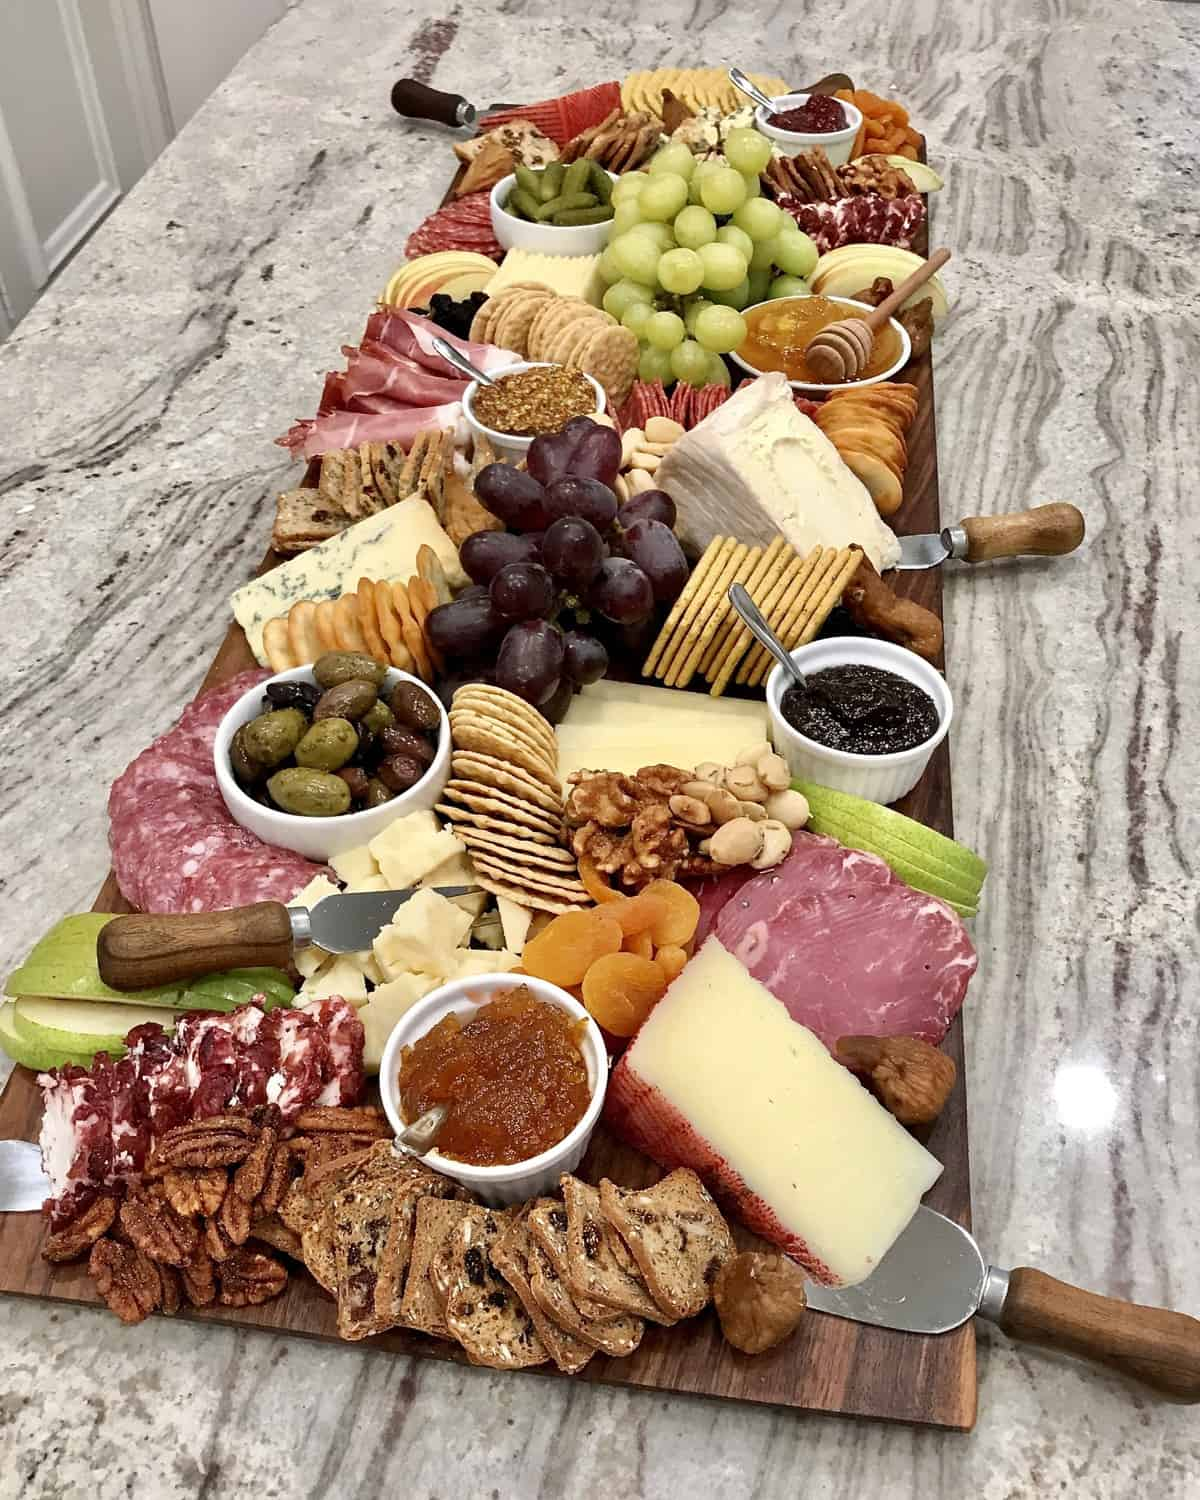 Trader Joe's Cheese and Charcuterie Board by The BakerMama